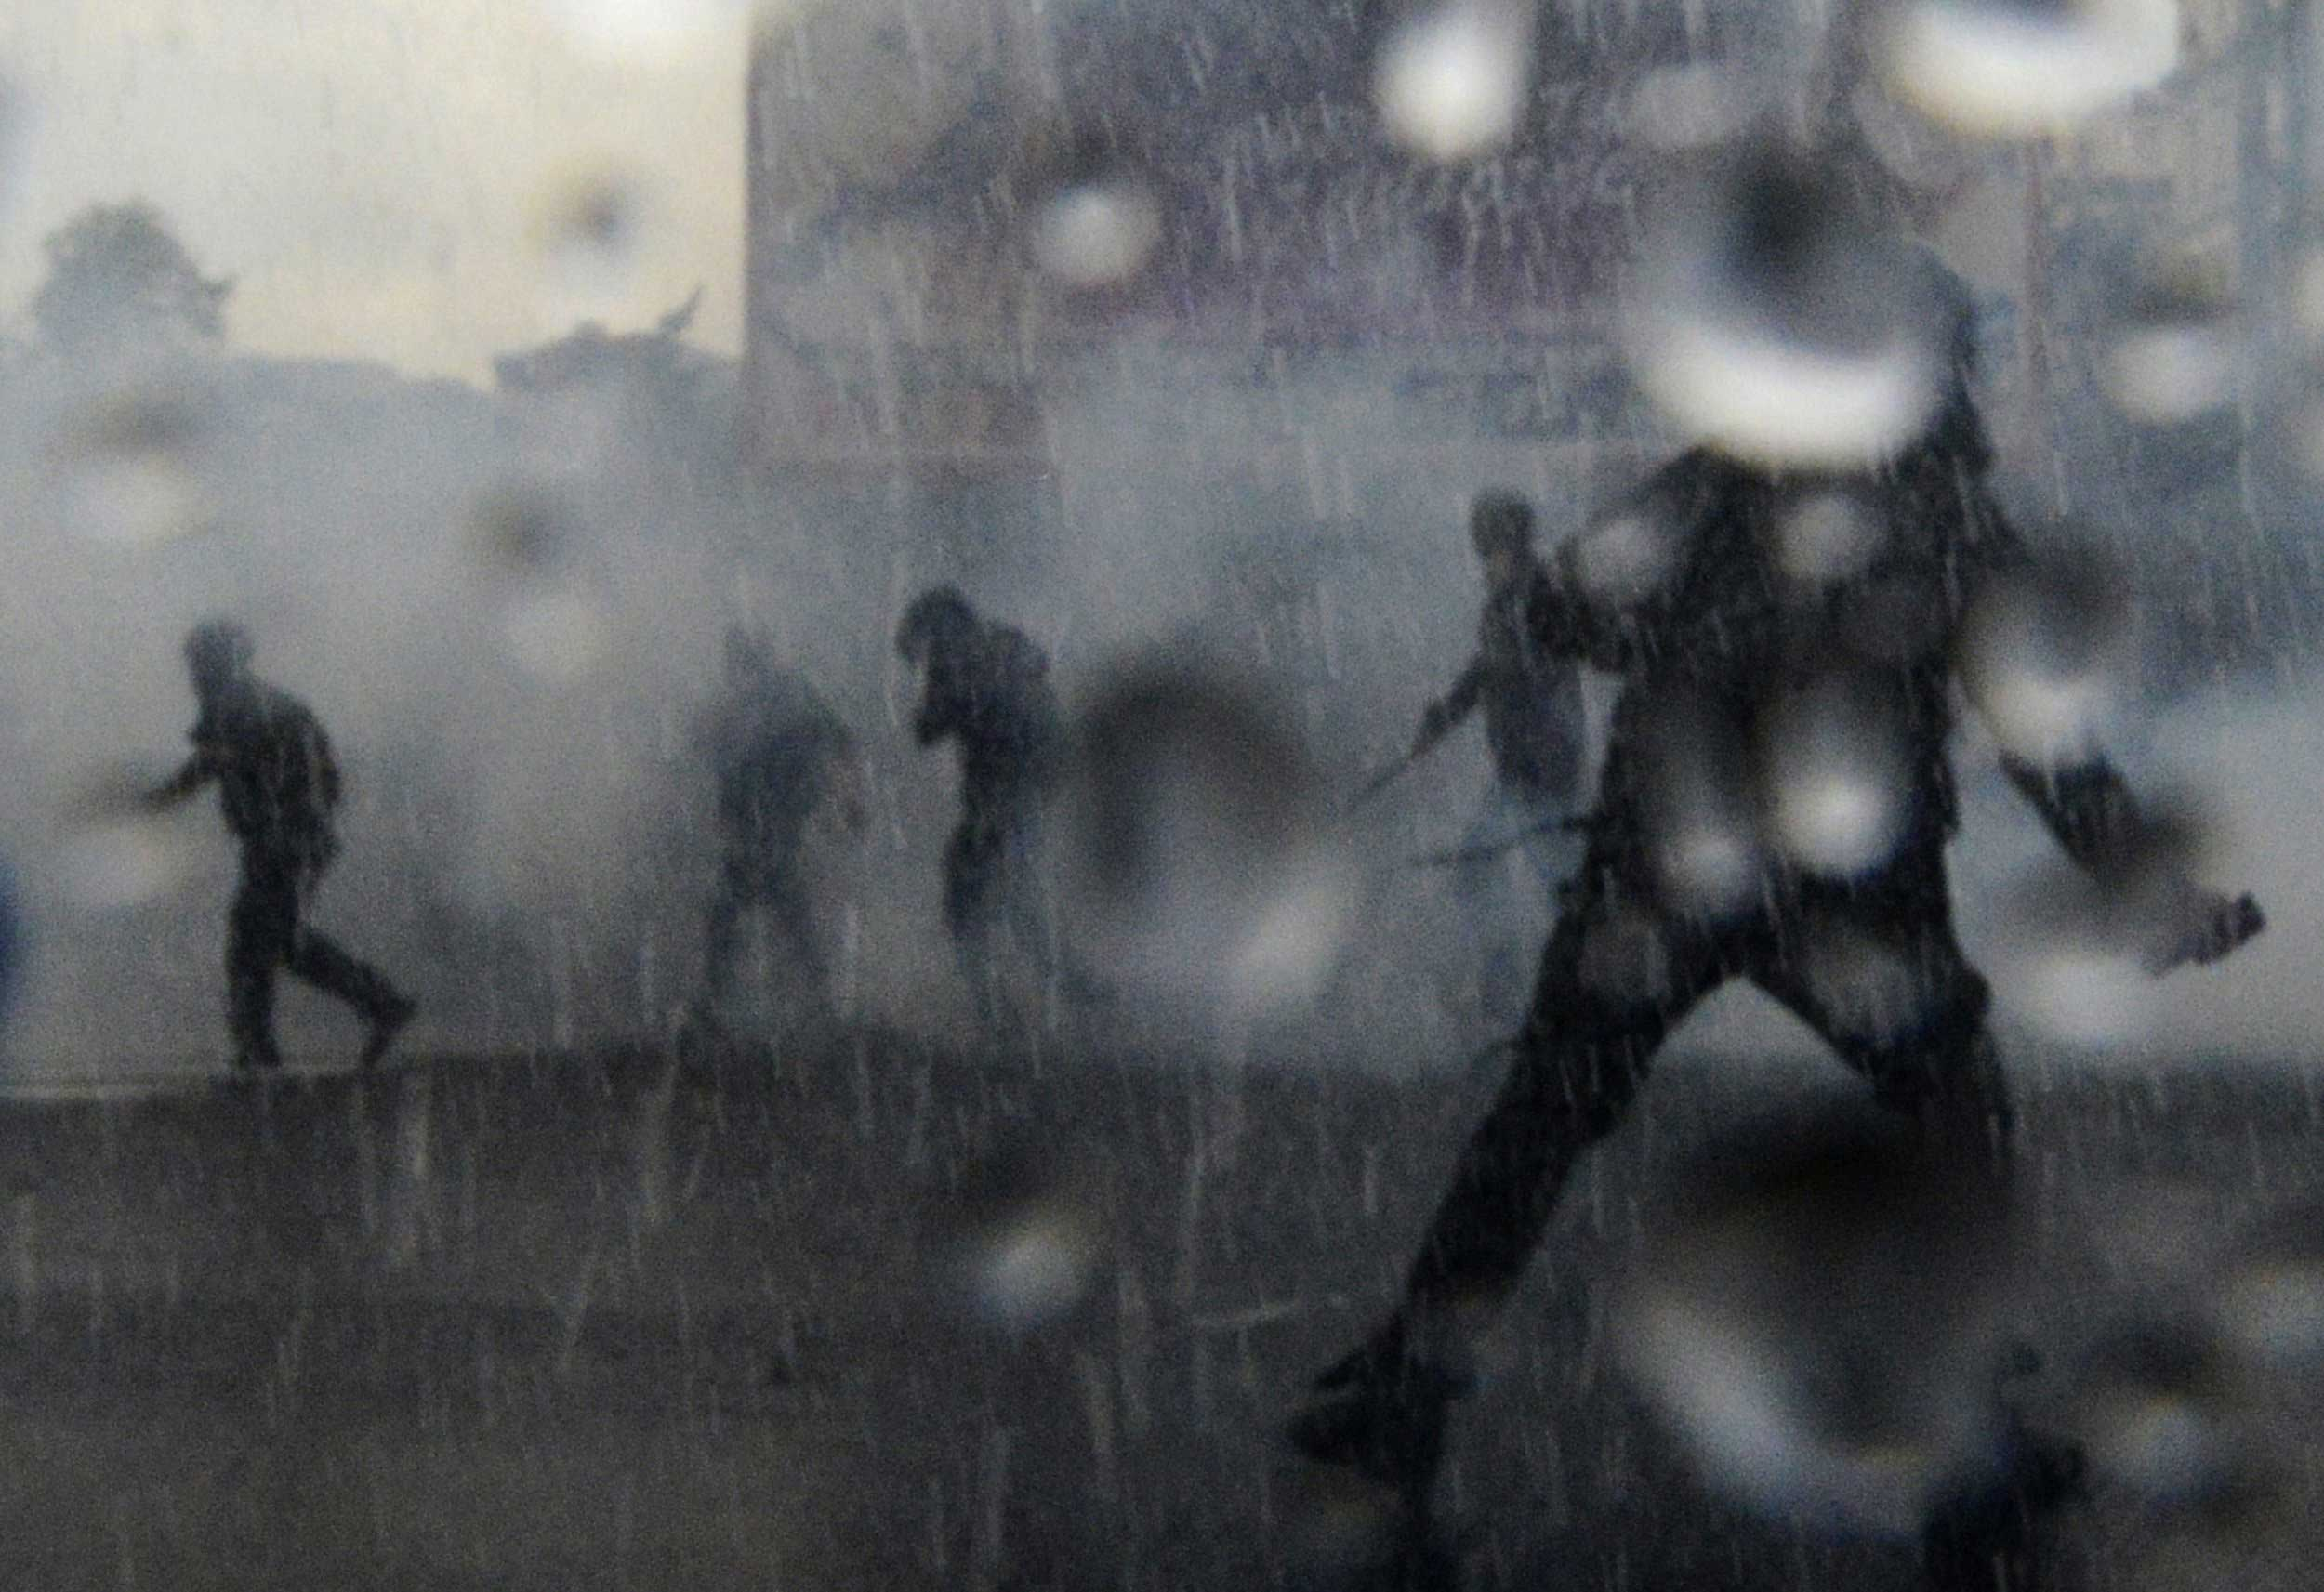 Oct. 2, 2014. Demonstrators confront police with water cannons as the ECB governing council meets in Naples, Italy. European Central Bank head Mario Draghi was expected to underline the bank's willingness to deploy more economic stimulus measures, a stance that could send the euro skidding even lower.